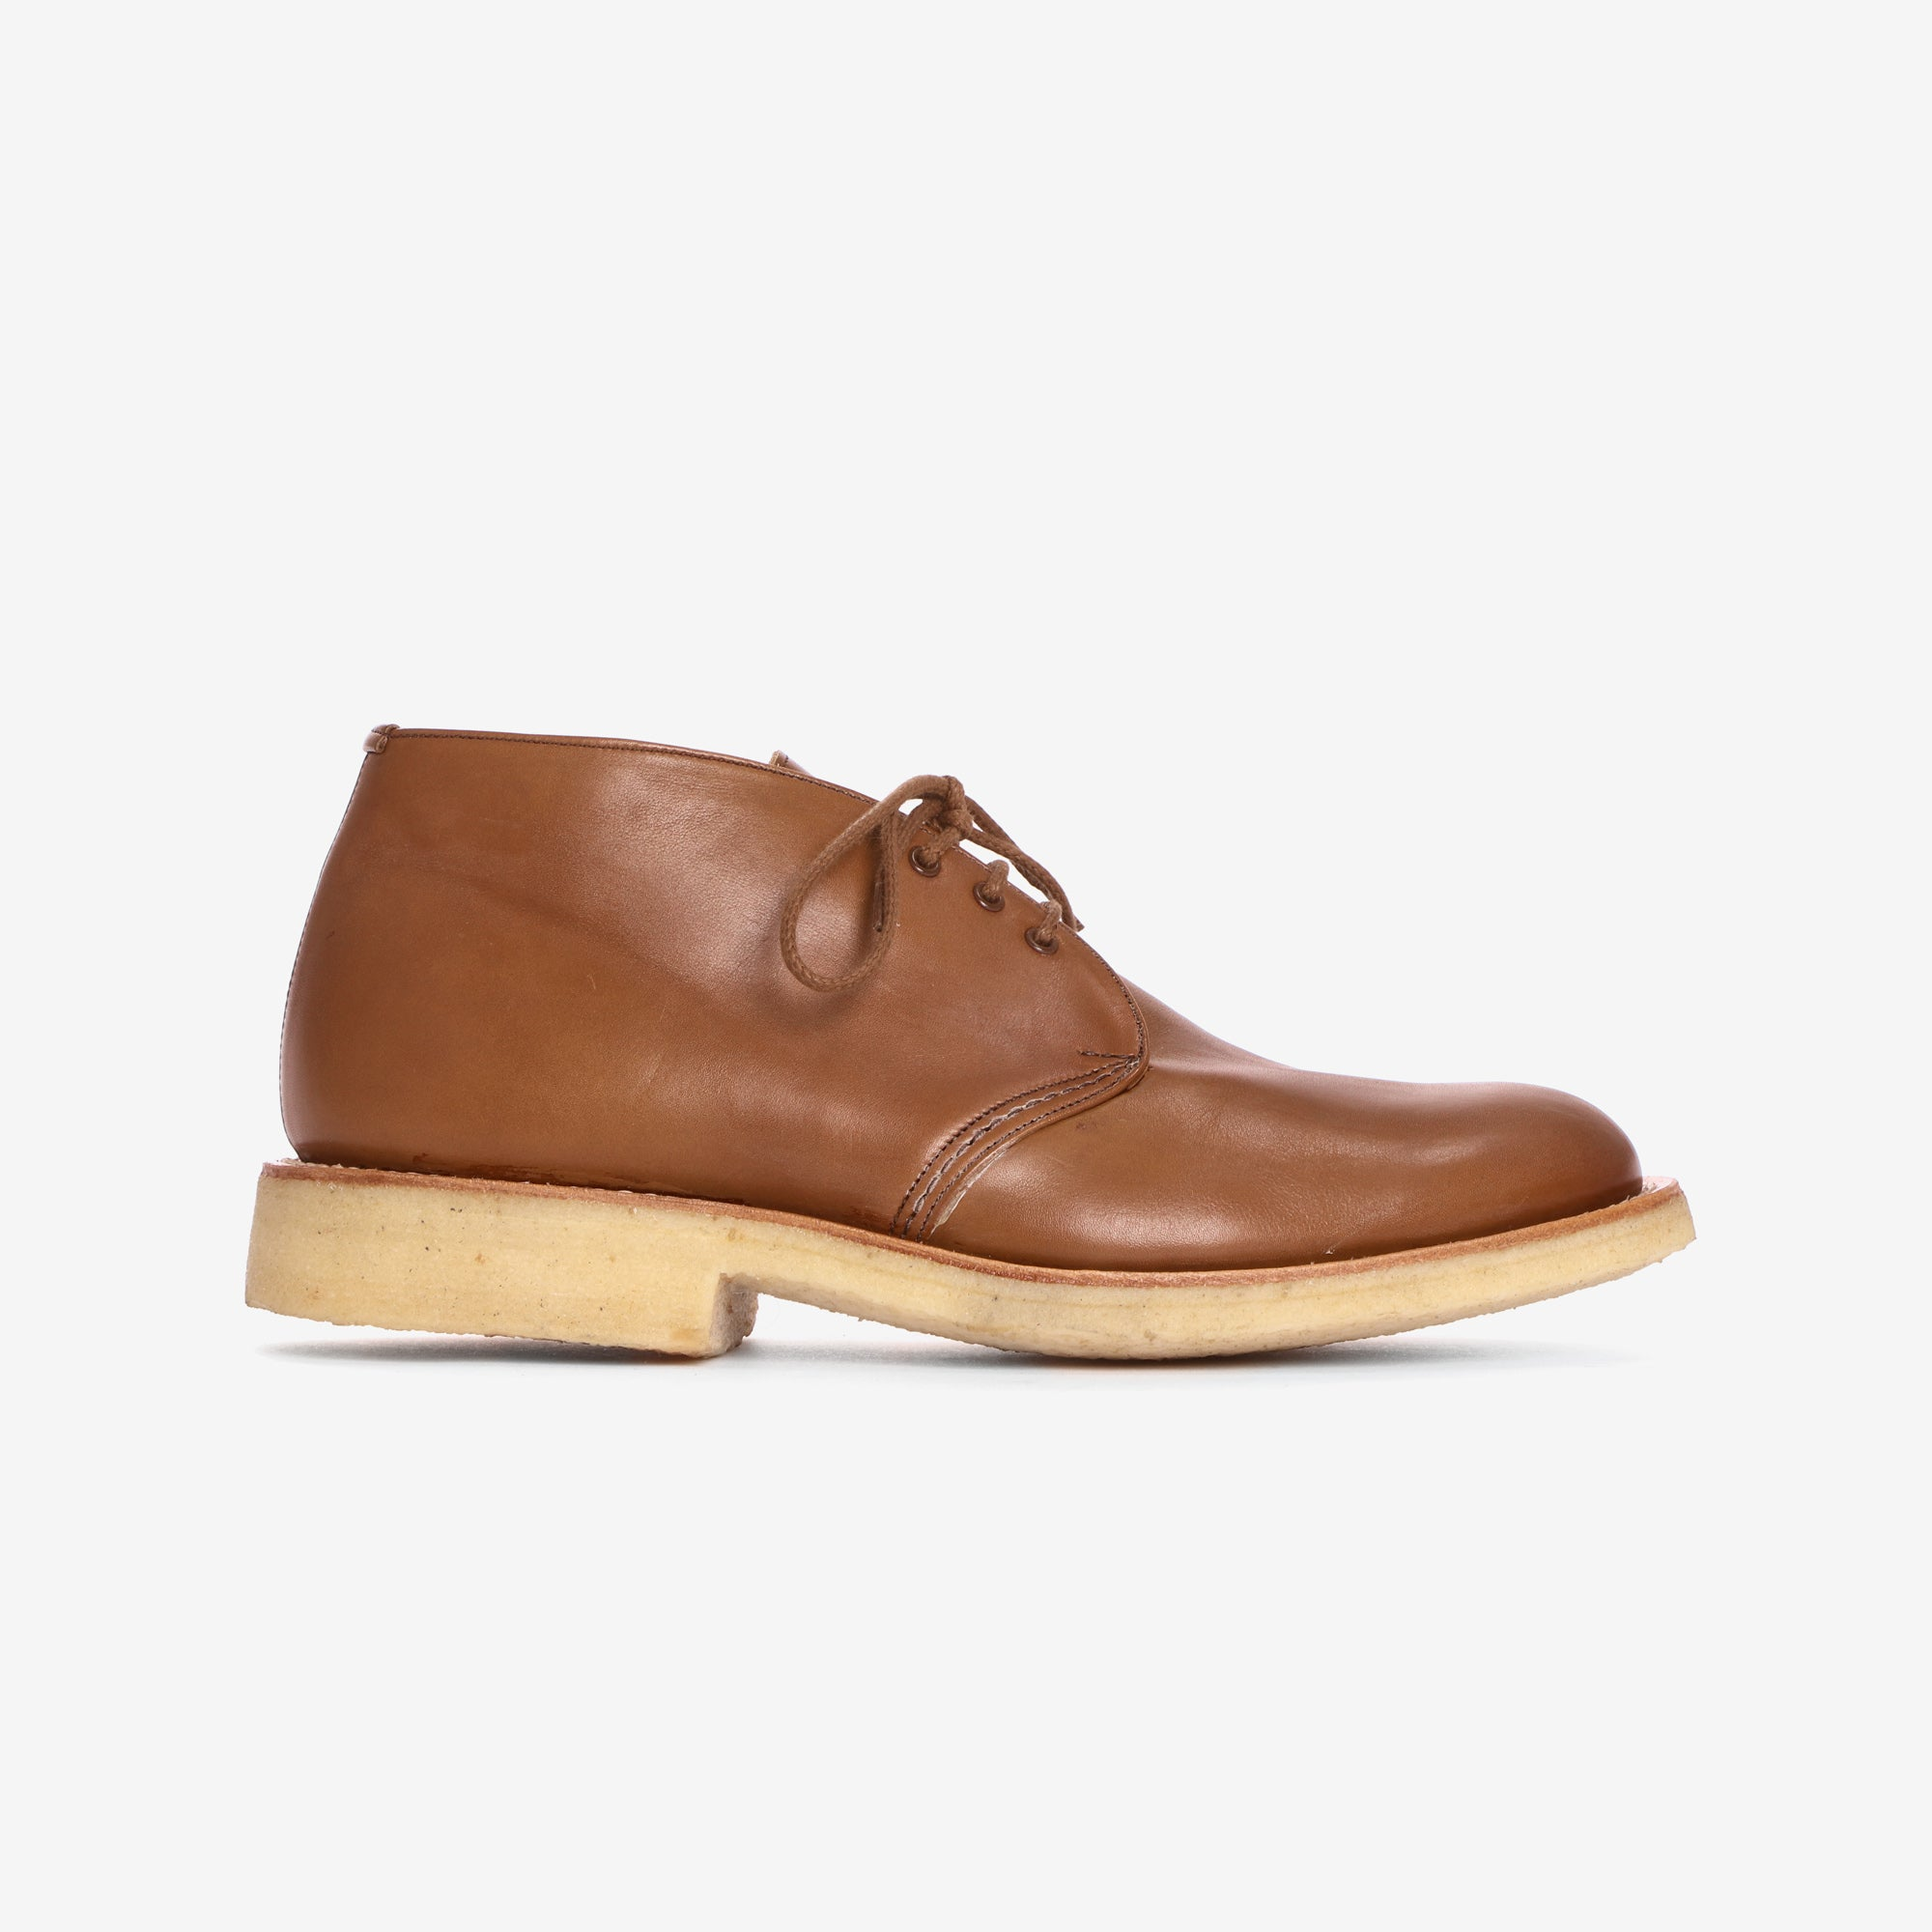 Tricker's x Margaret Howell Leather Chukka Boots